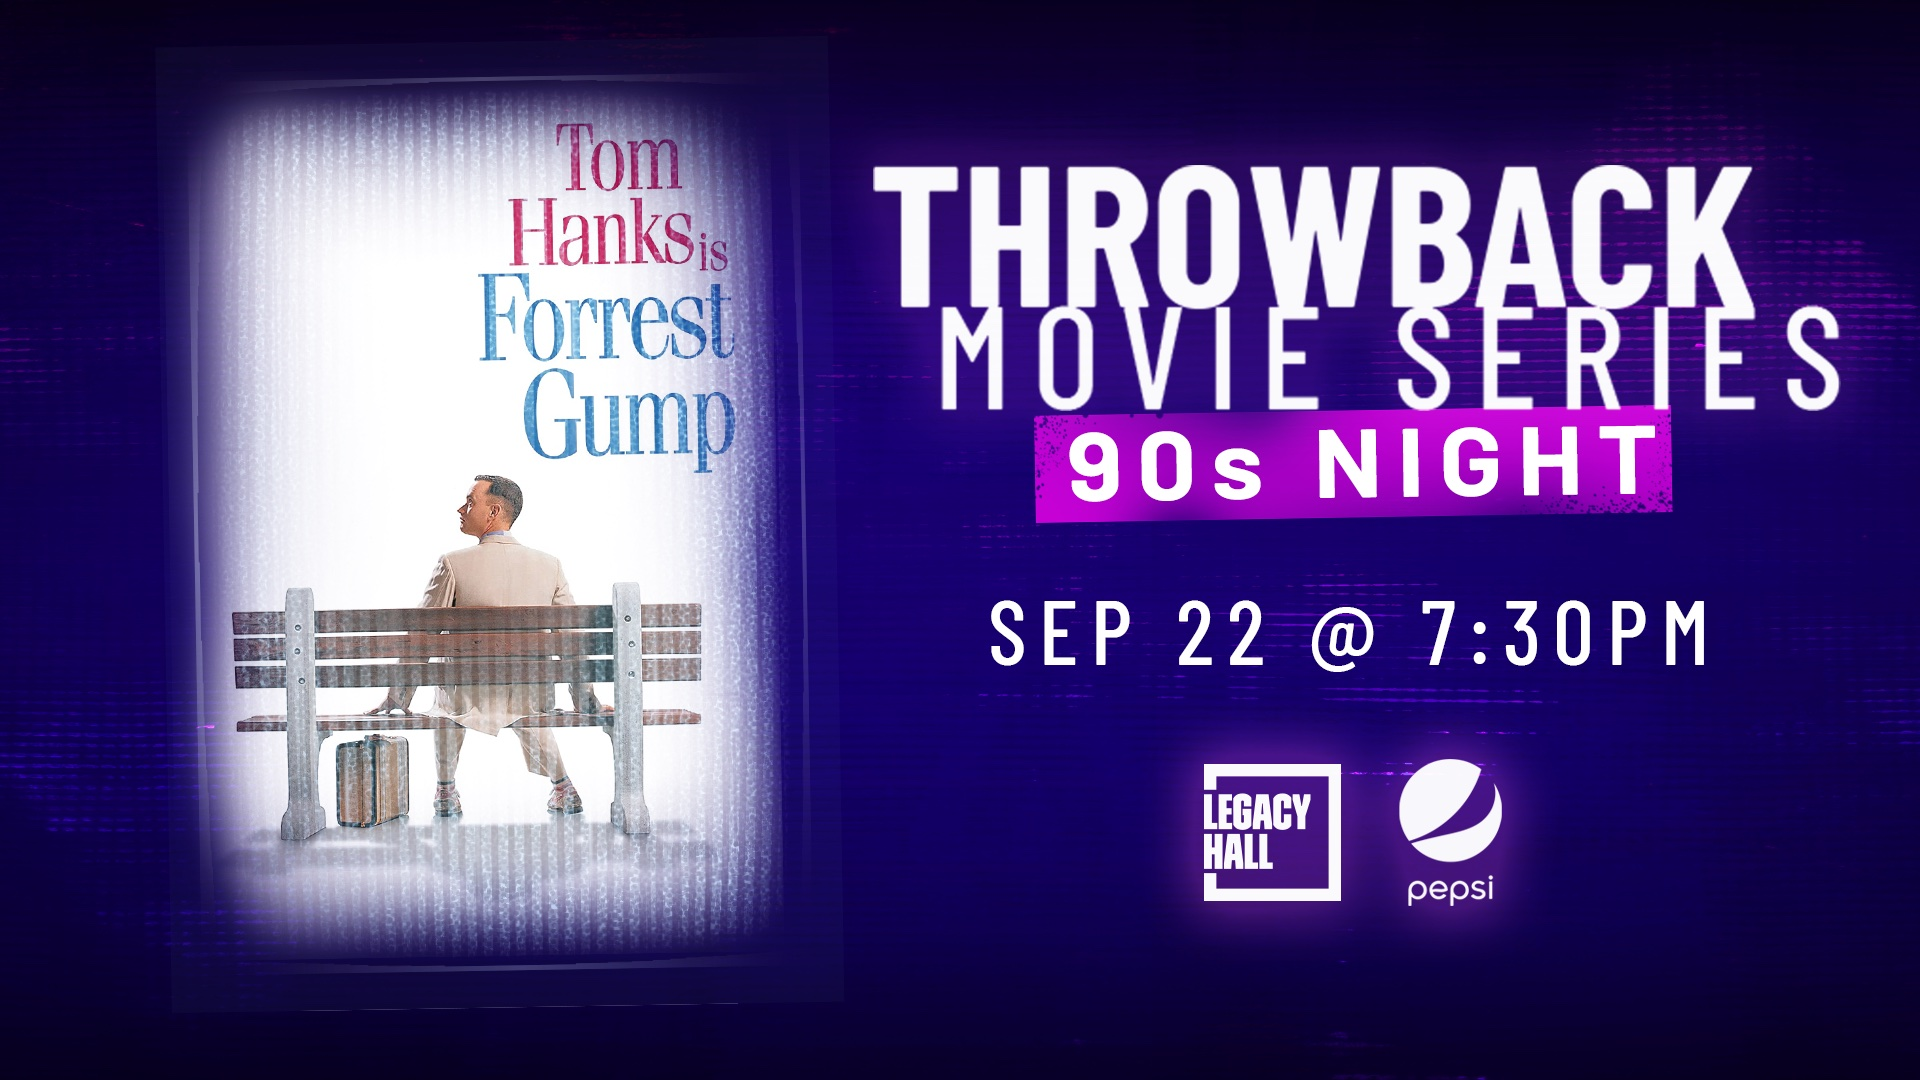 Promo image of Throwback Movie Series: Forrest Gump